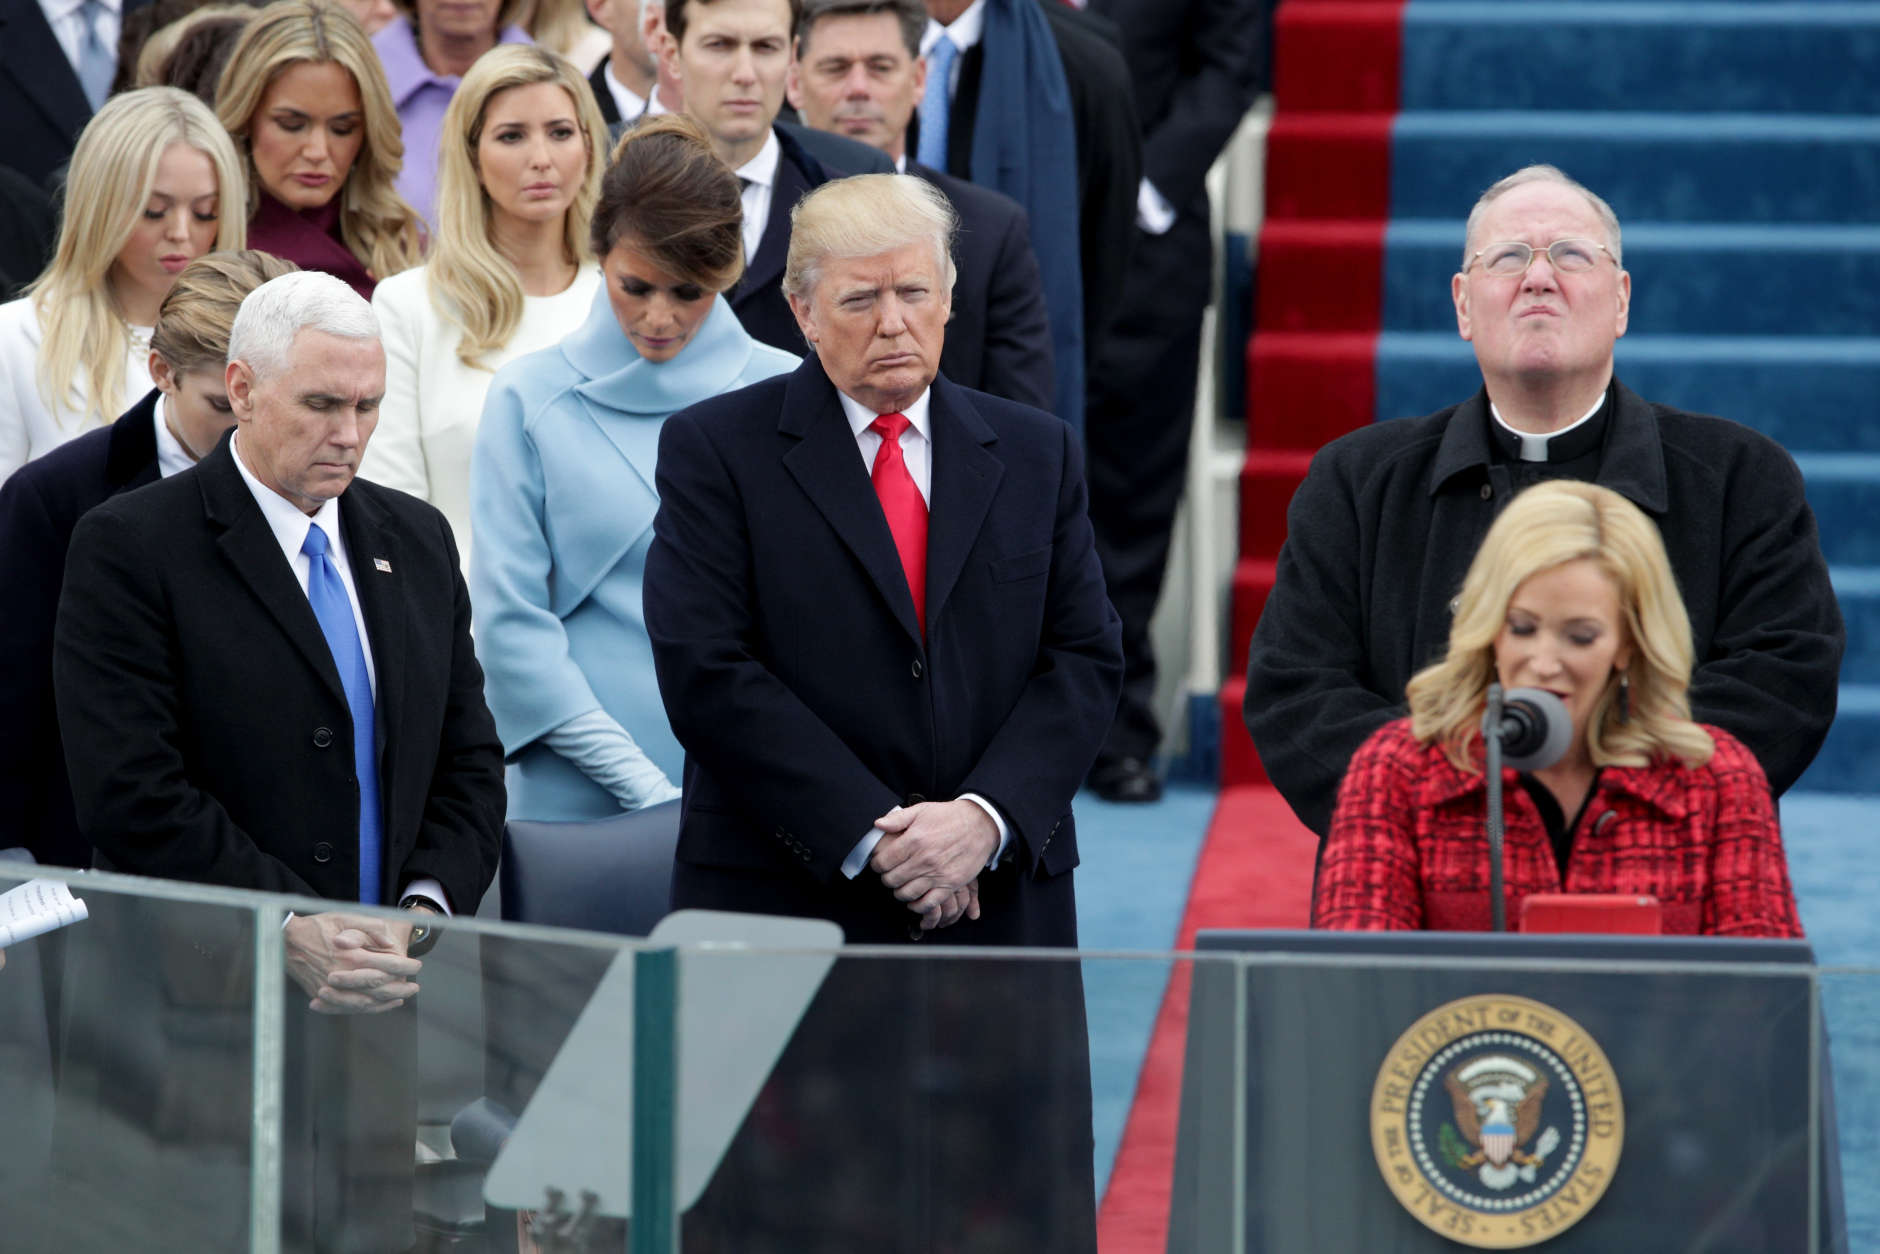 WASHINGTON, DC - JANUARY 20: Vice Presidential candidate Mike Pence (L) and President Elect Donald Trump stand on the West Front of the U.S. Capitol on January 20, 2017 in Washington, DC. In today's inauguration ceremony Donald J. Trump becomes the 45th president of the United States.  (Photo by Alex Wong/Getty Images)